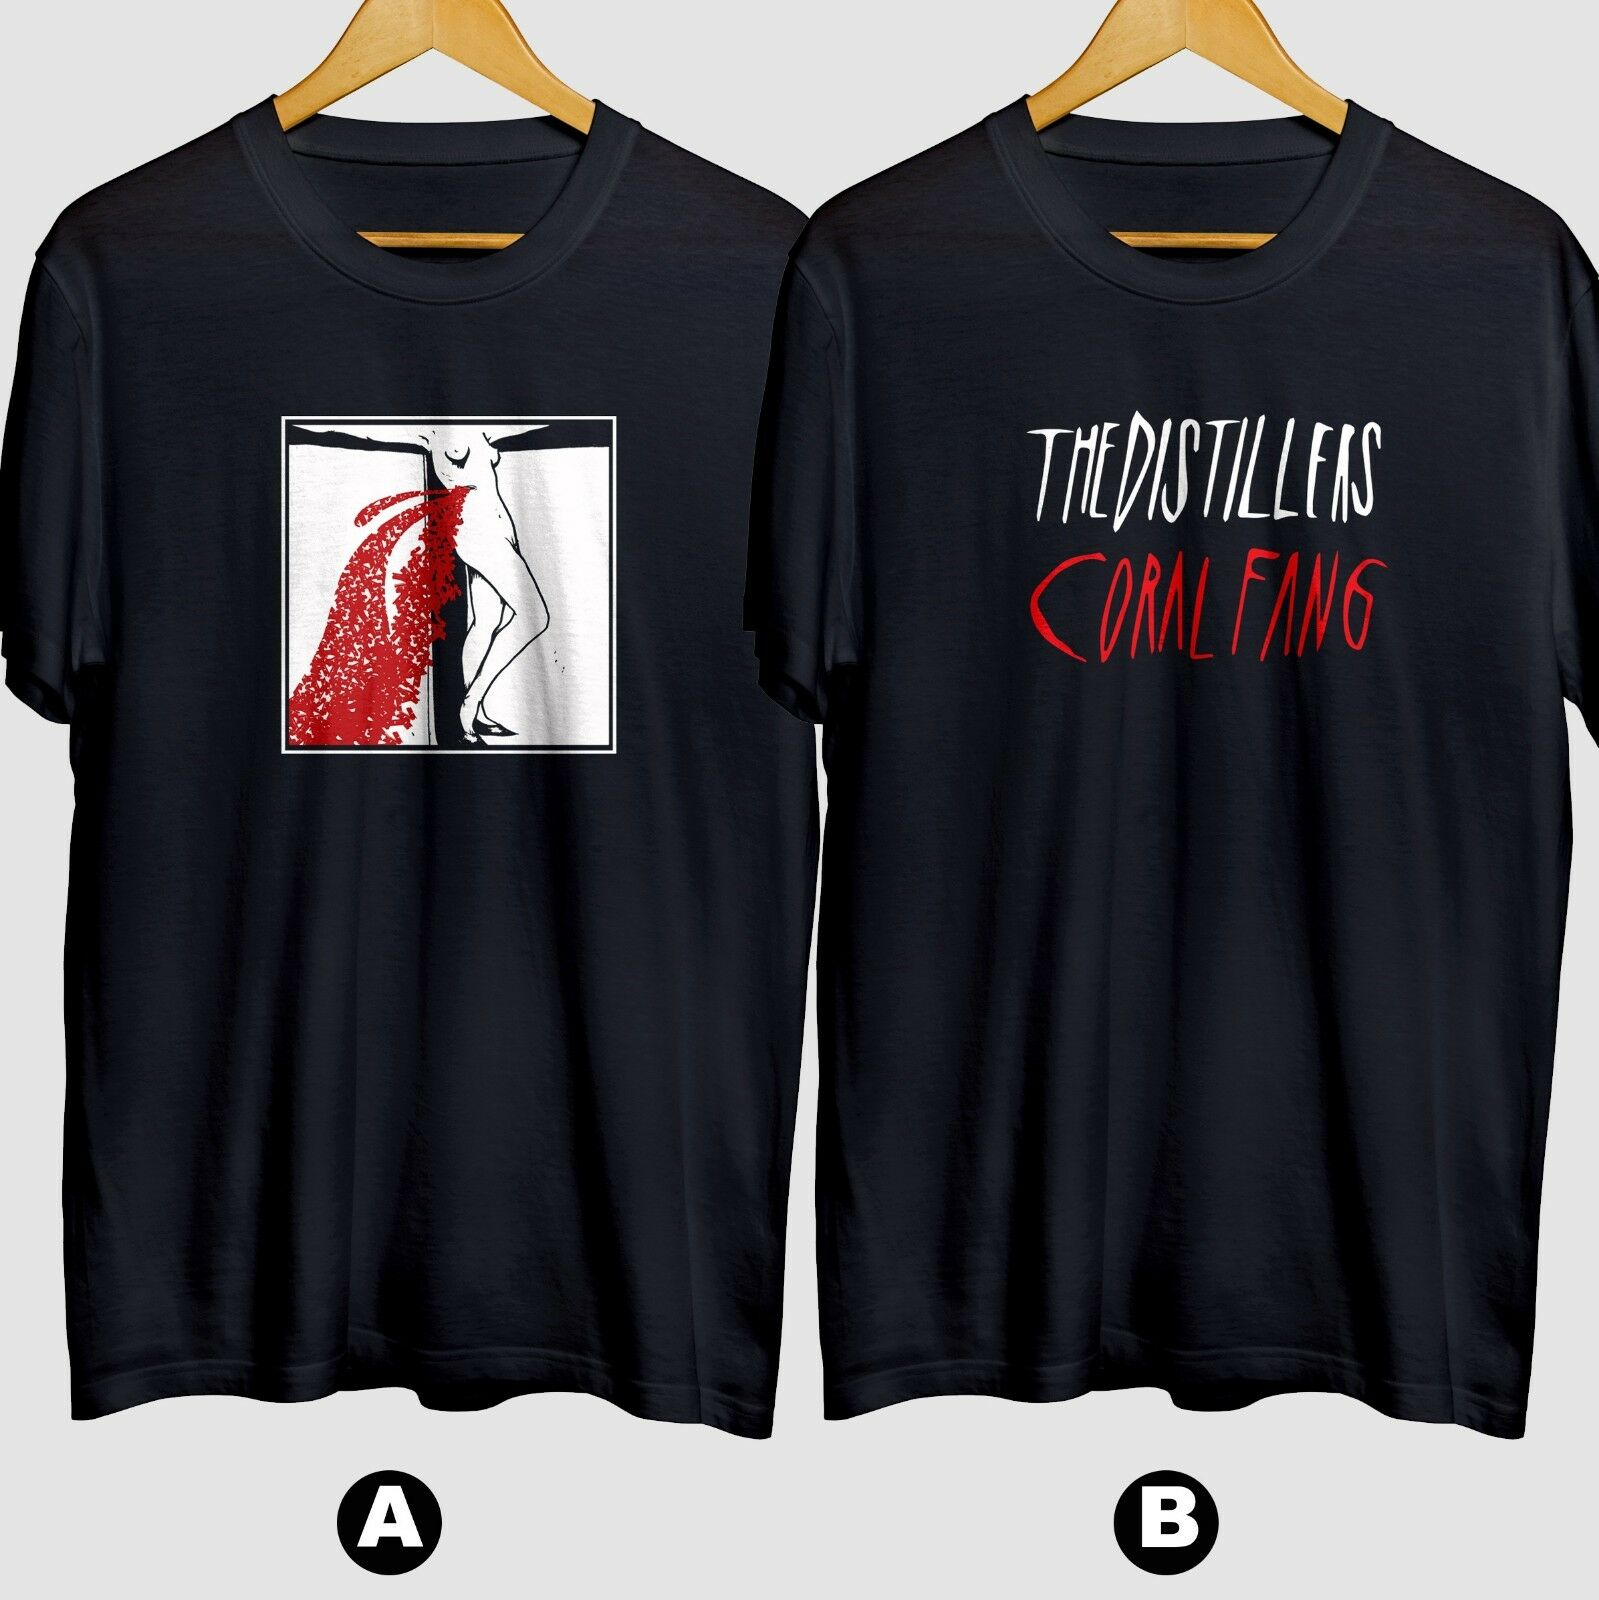 The Distillers Coral Fang Brody Dalle New Cotton T Shirt One Day